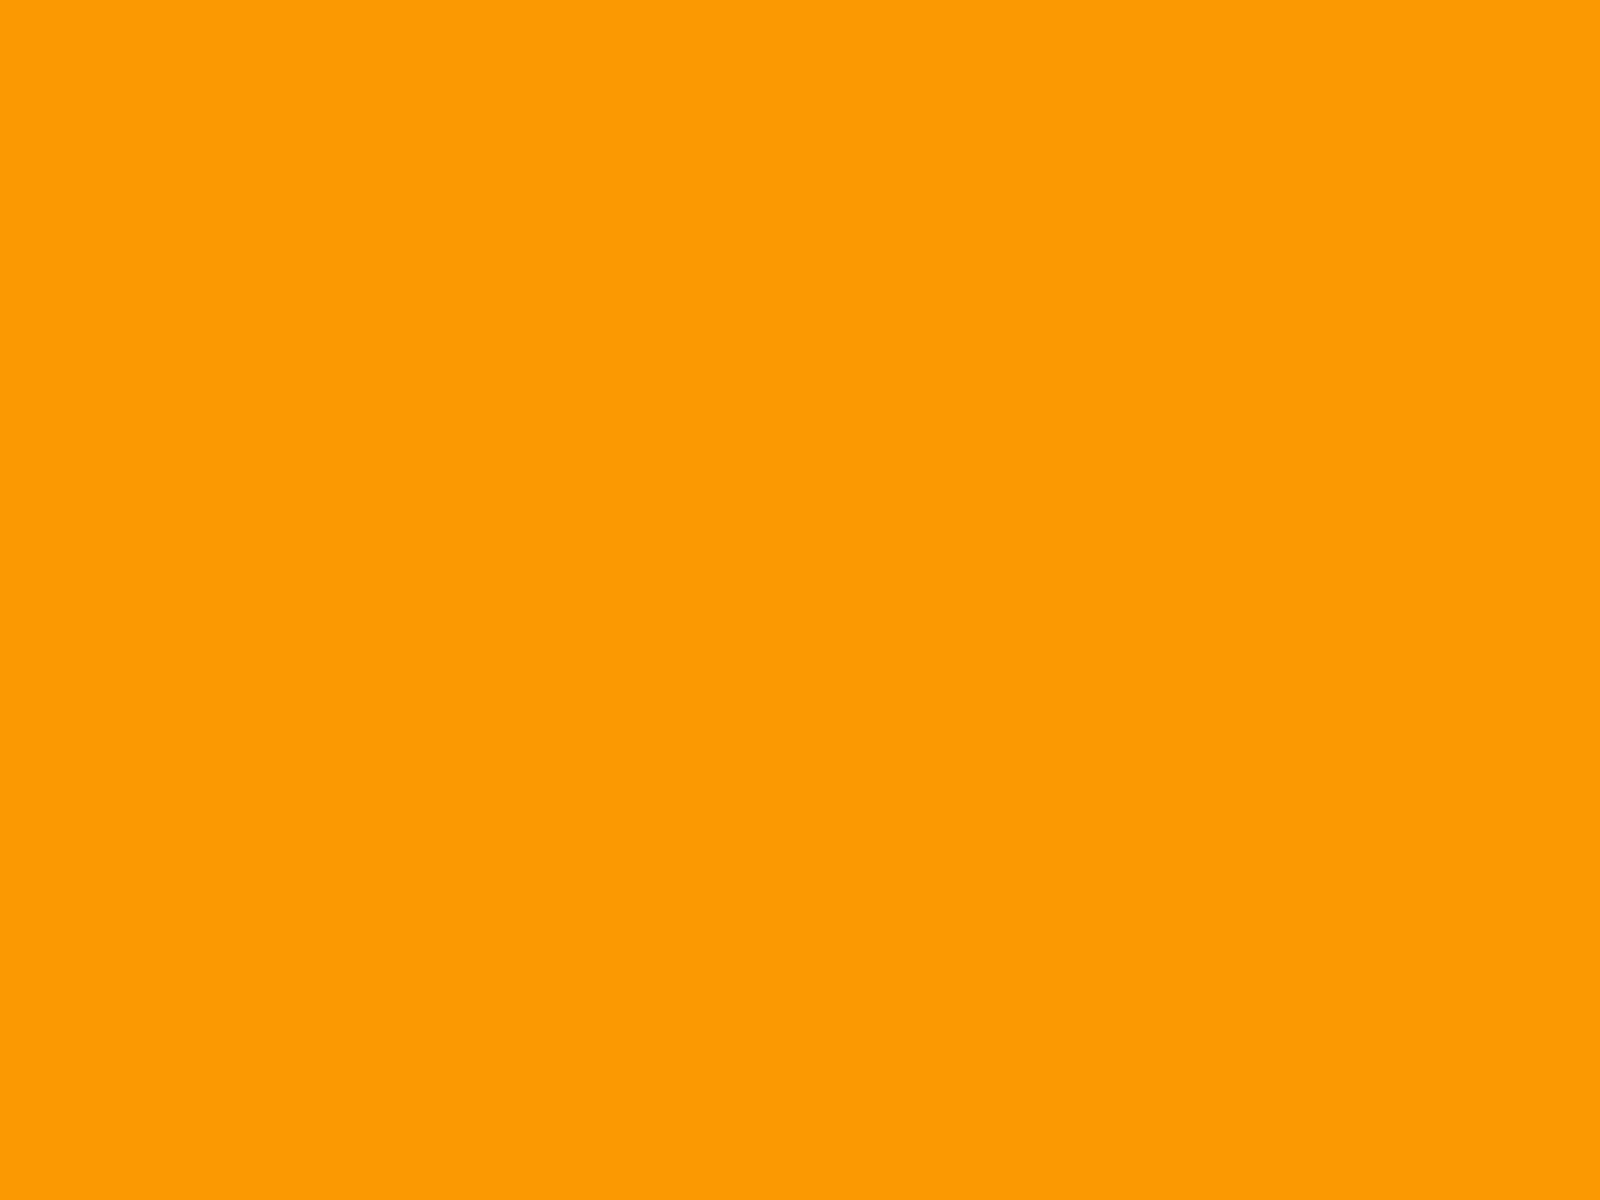 1600x1200 Orange RYB Solid Color Background